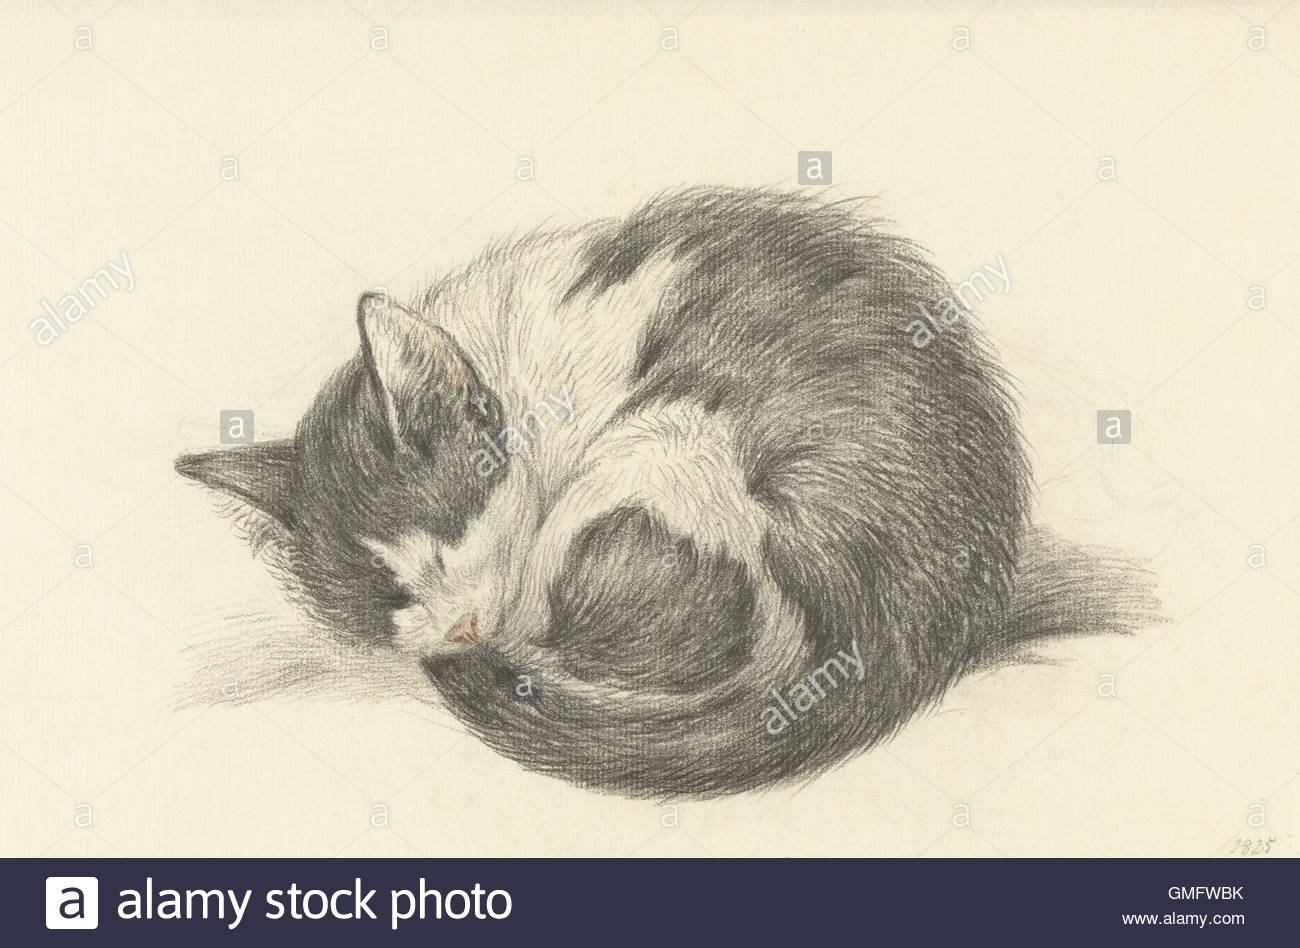 1300x948 Sleeping Cat Rolled Into A Ball, By Jean Bernard, 1825, Dutch